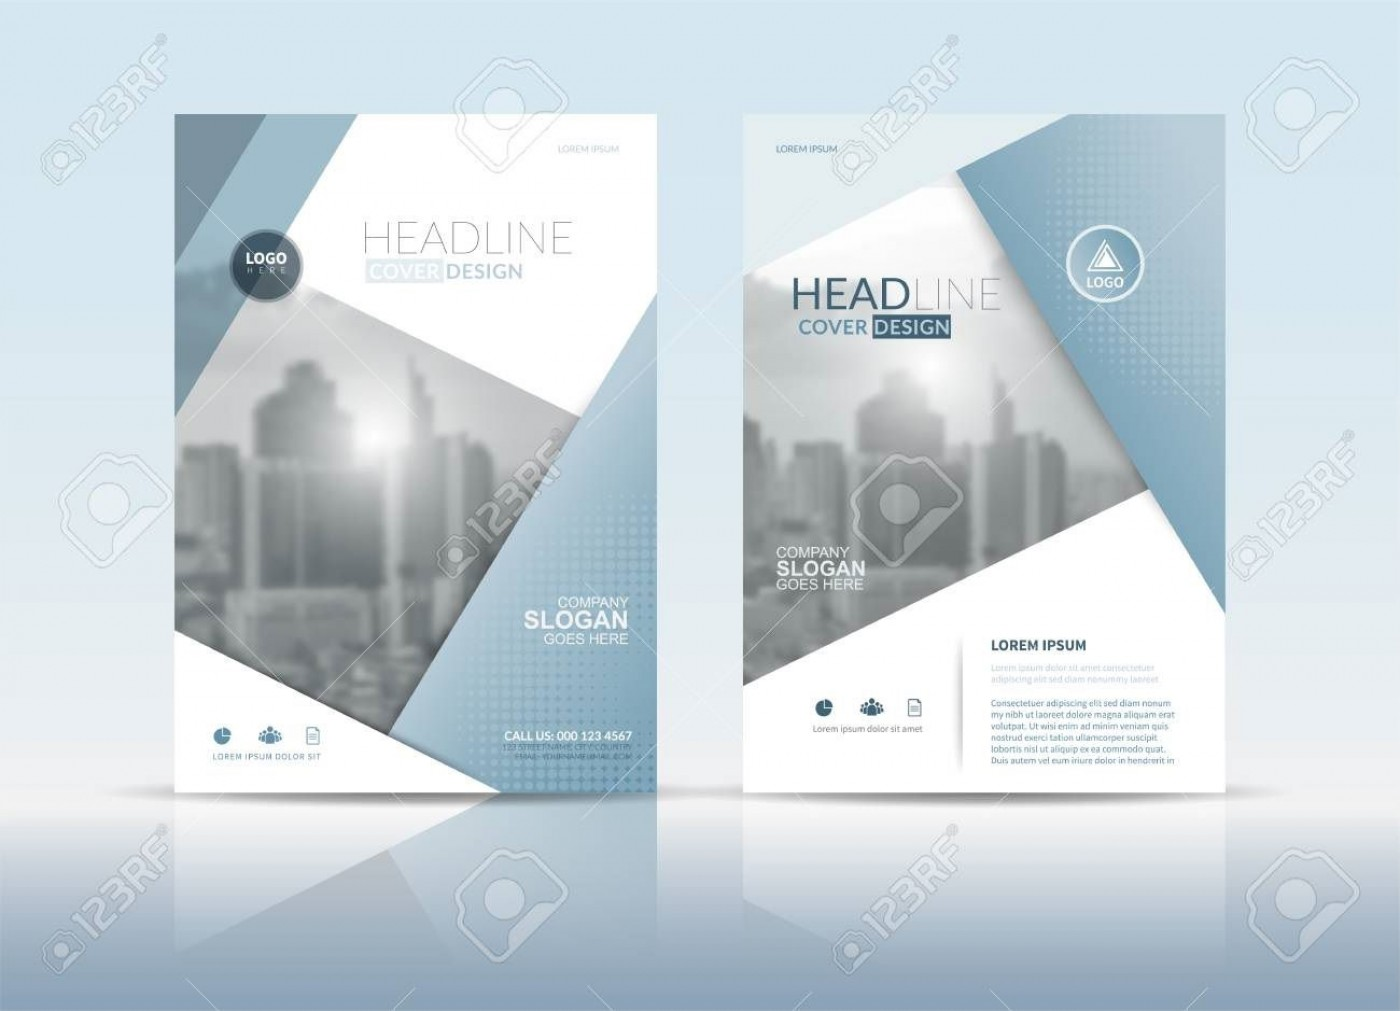 003 Dreaded Free Download Annual Report Cover Design Template Inspiration  In Word Page1400